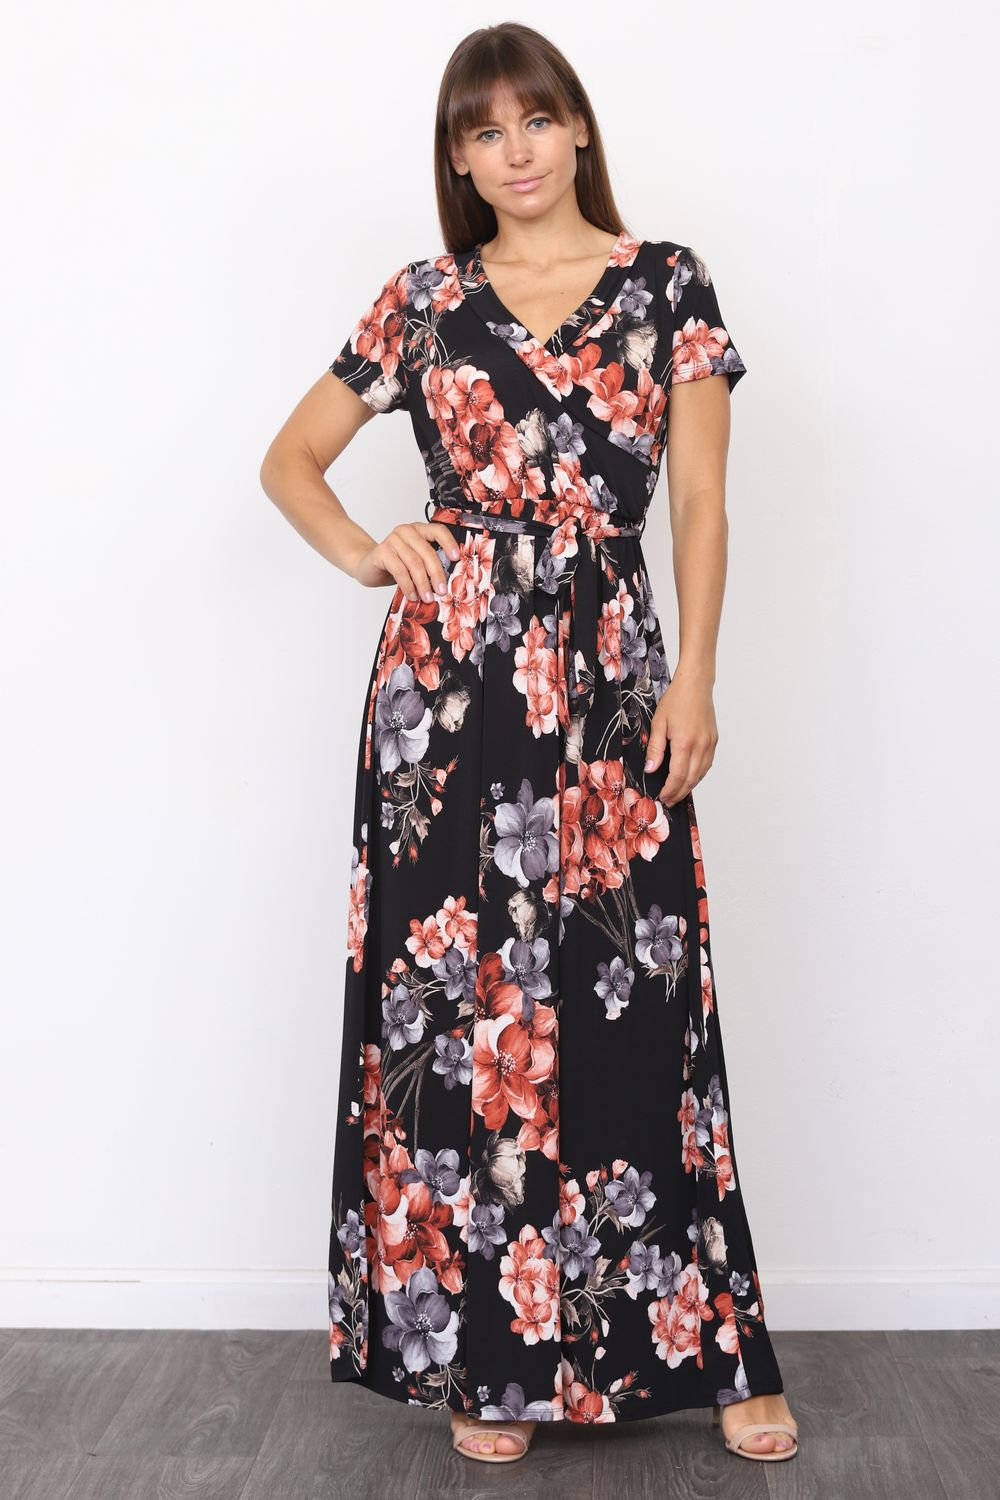 Black & Red Floral Short Sleeve Surplice Maxi Dress with Sash